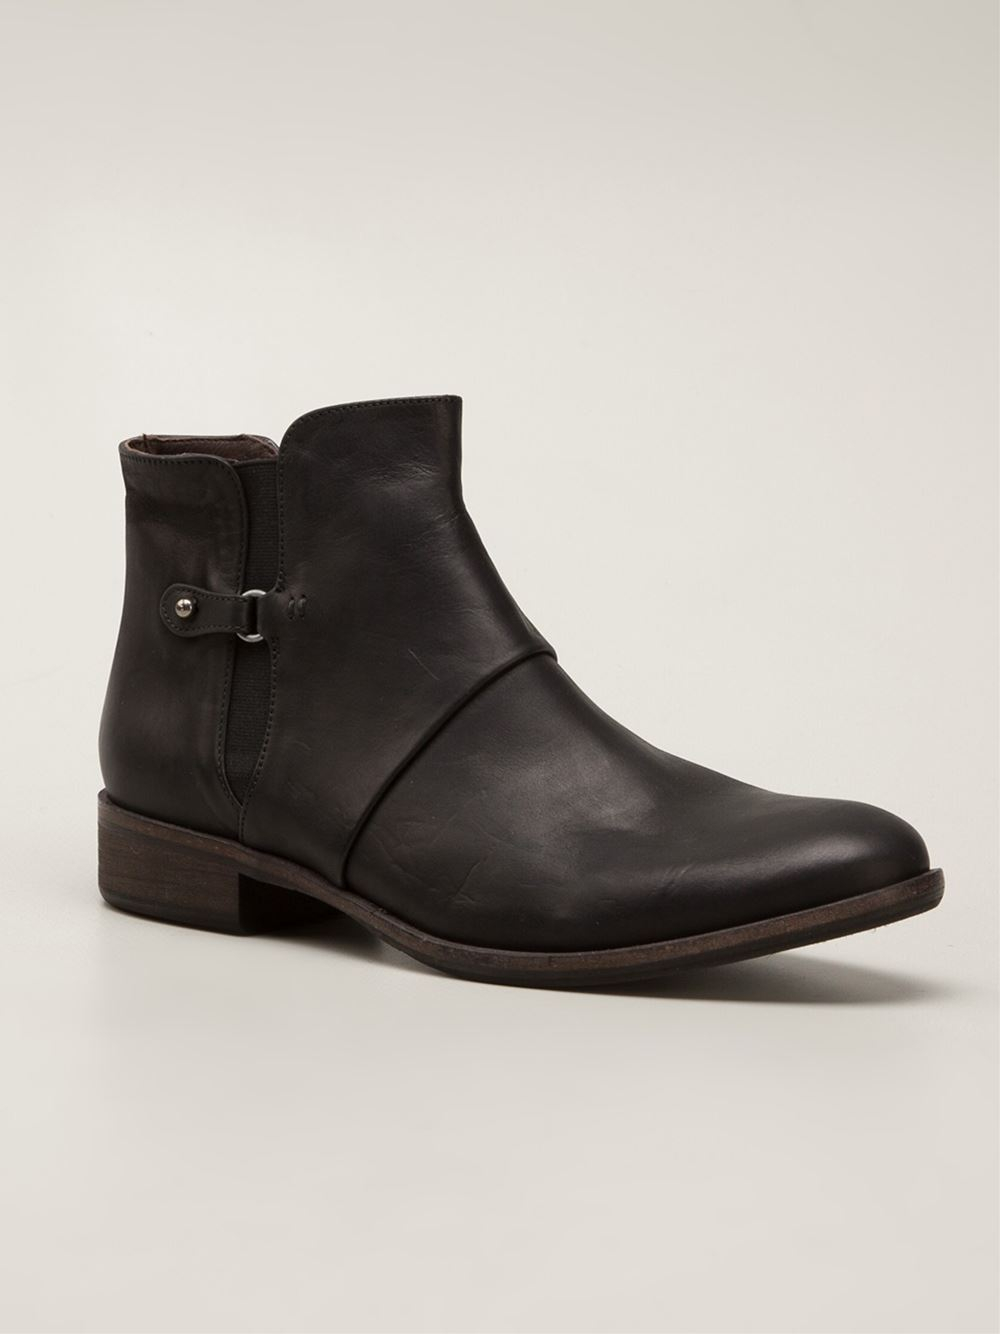 Coclico Mansfield Boots in Black